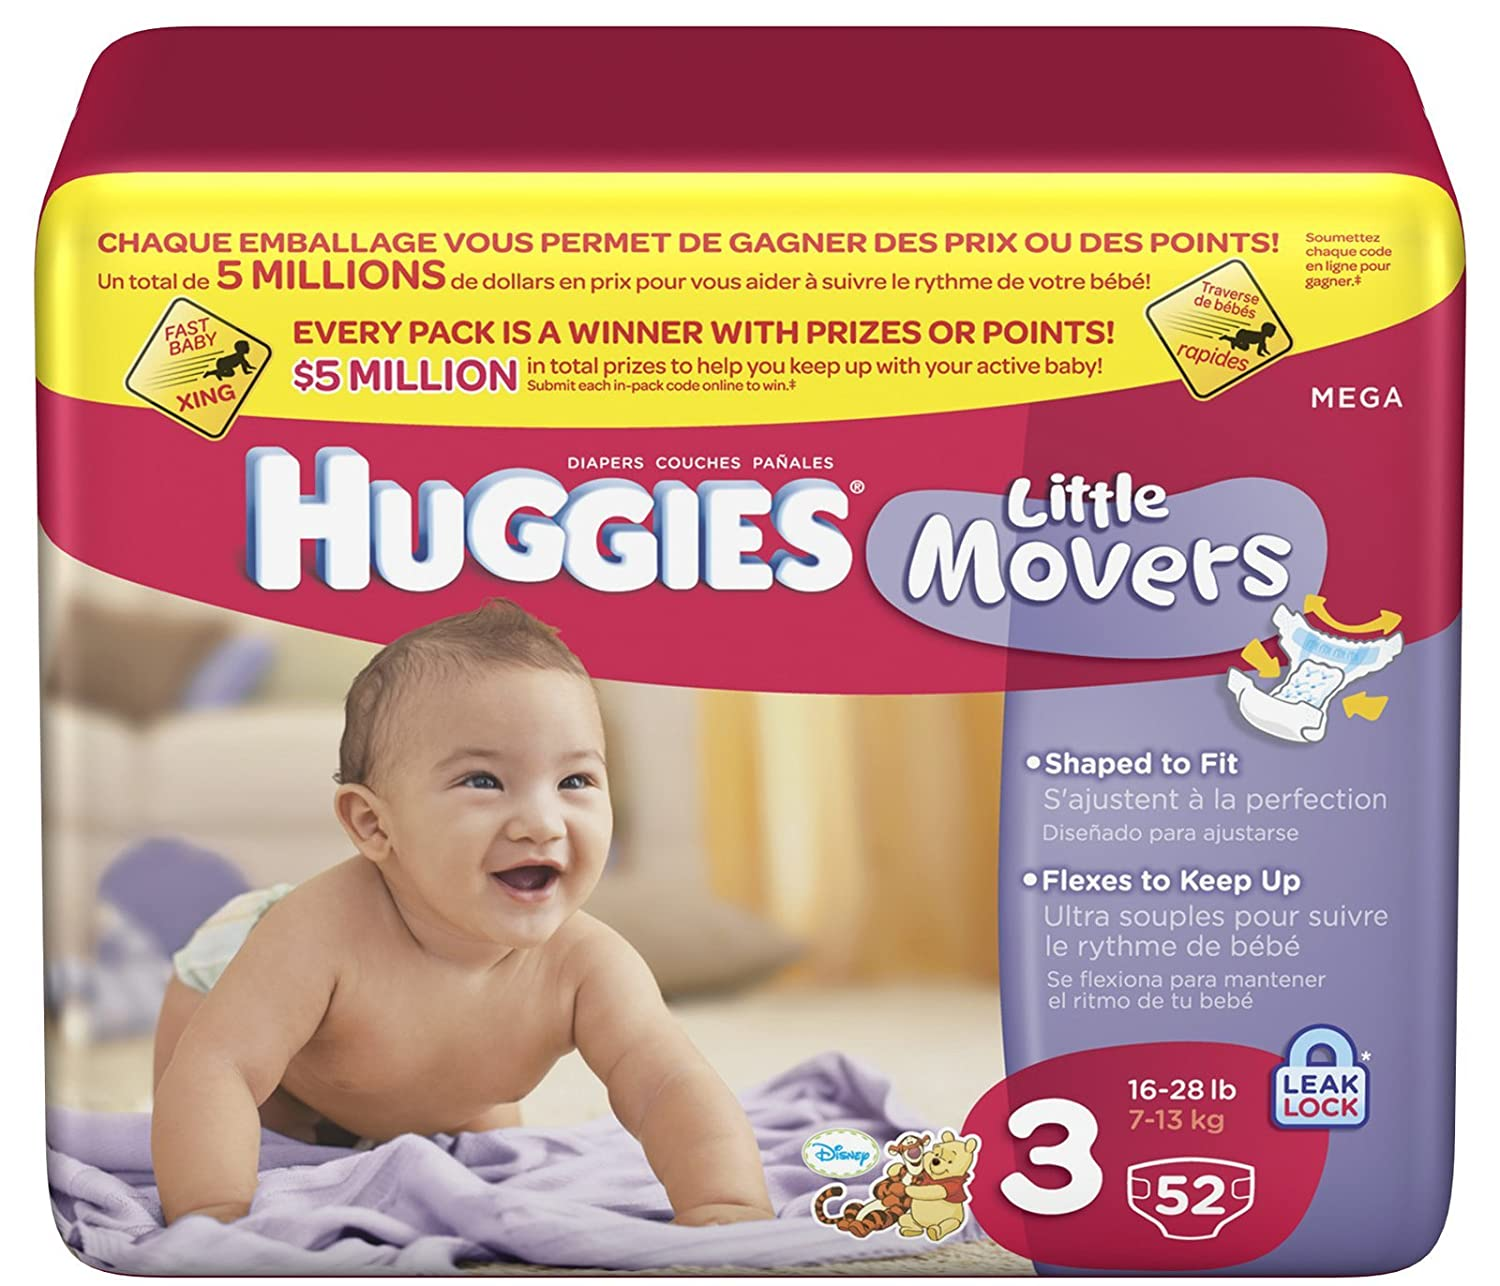 Amazon.com: Huggies Little Movers Original Diapers - Size 3 - 52 ct: Health & Personal Care